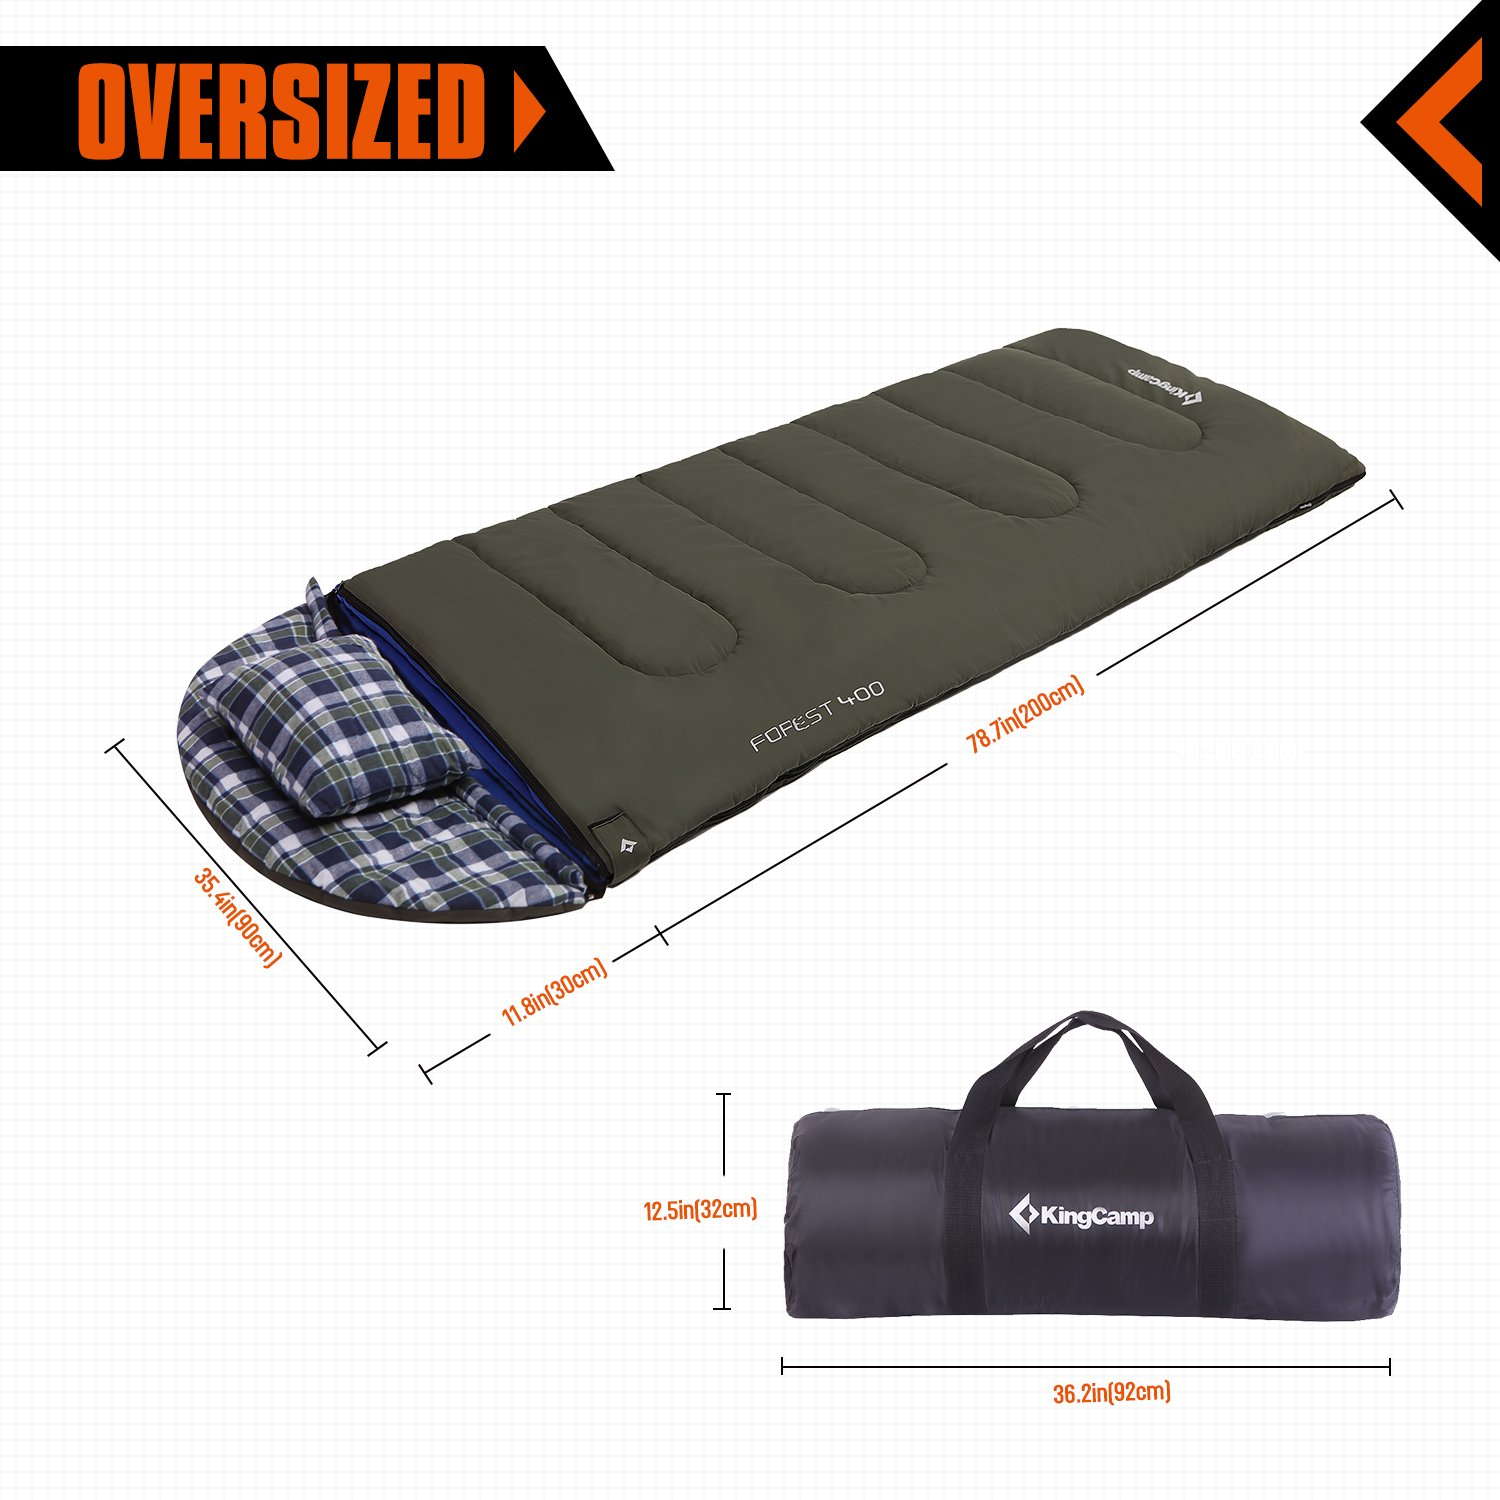 KingCamp Forest All Season Oversize Cotton Cover Camping Sleeping Bag with Removable Liner and Pillow (Right Zip, Comfort Zone 18 ~ 32 °F)